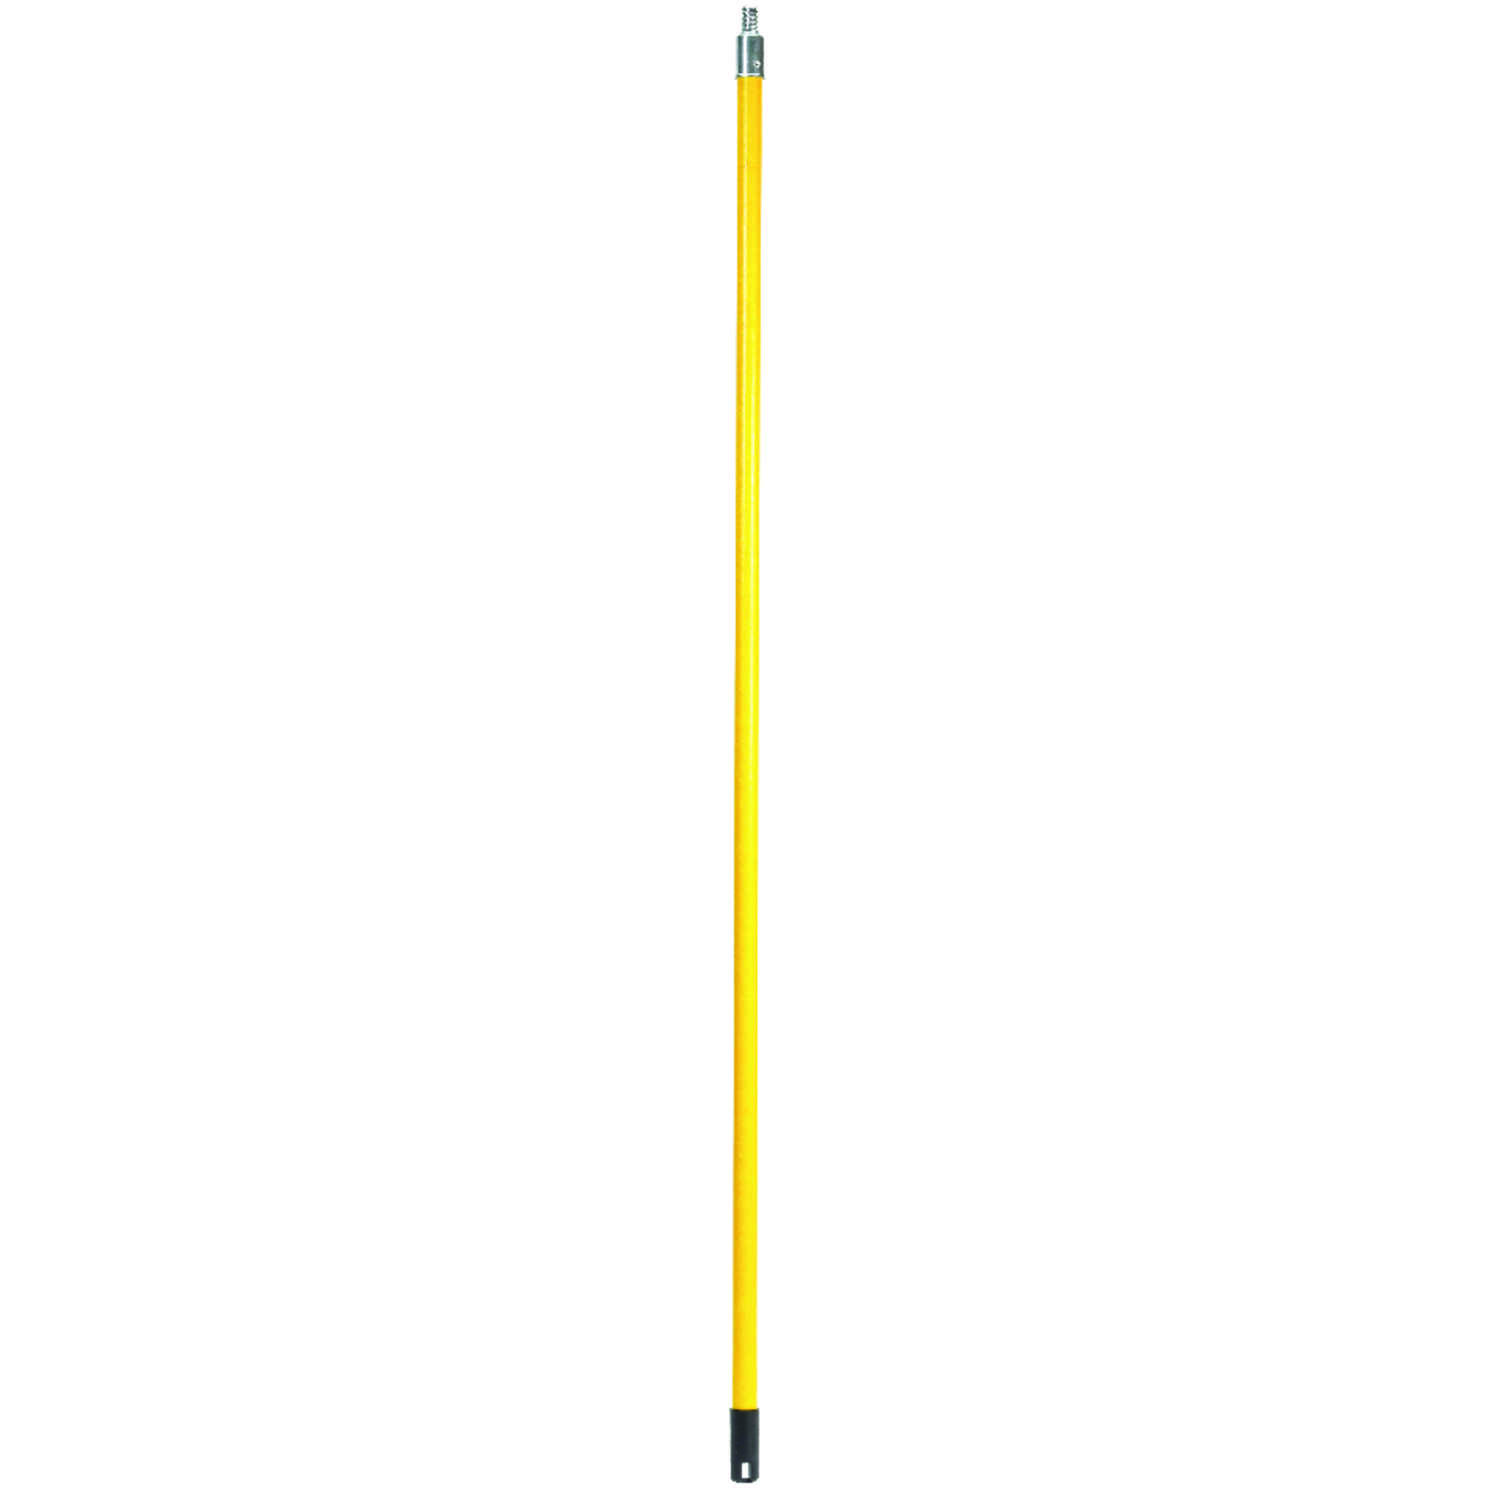 Ace  Telescoping 5 ft. L x 1 in. Dia. Fiberglass  Extension Pole